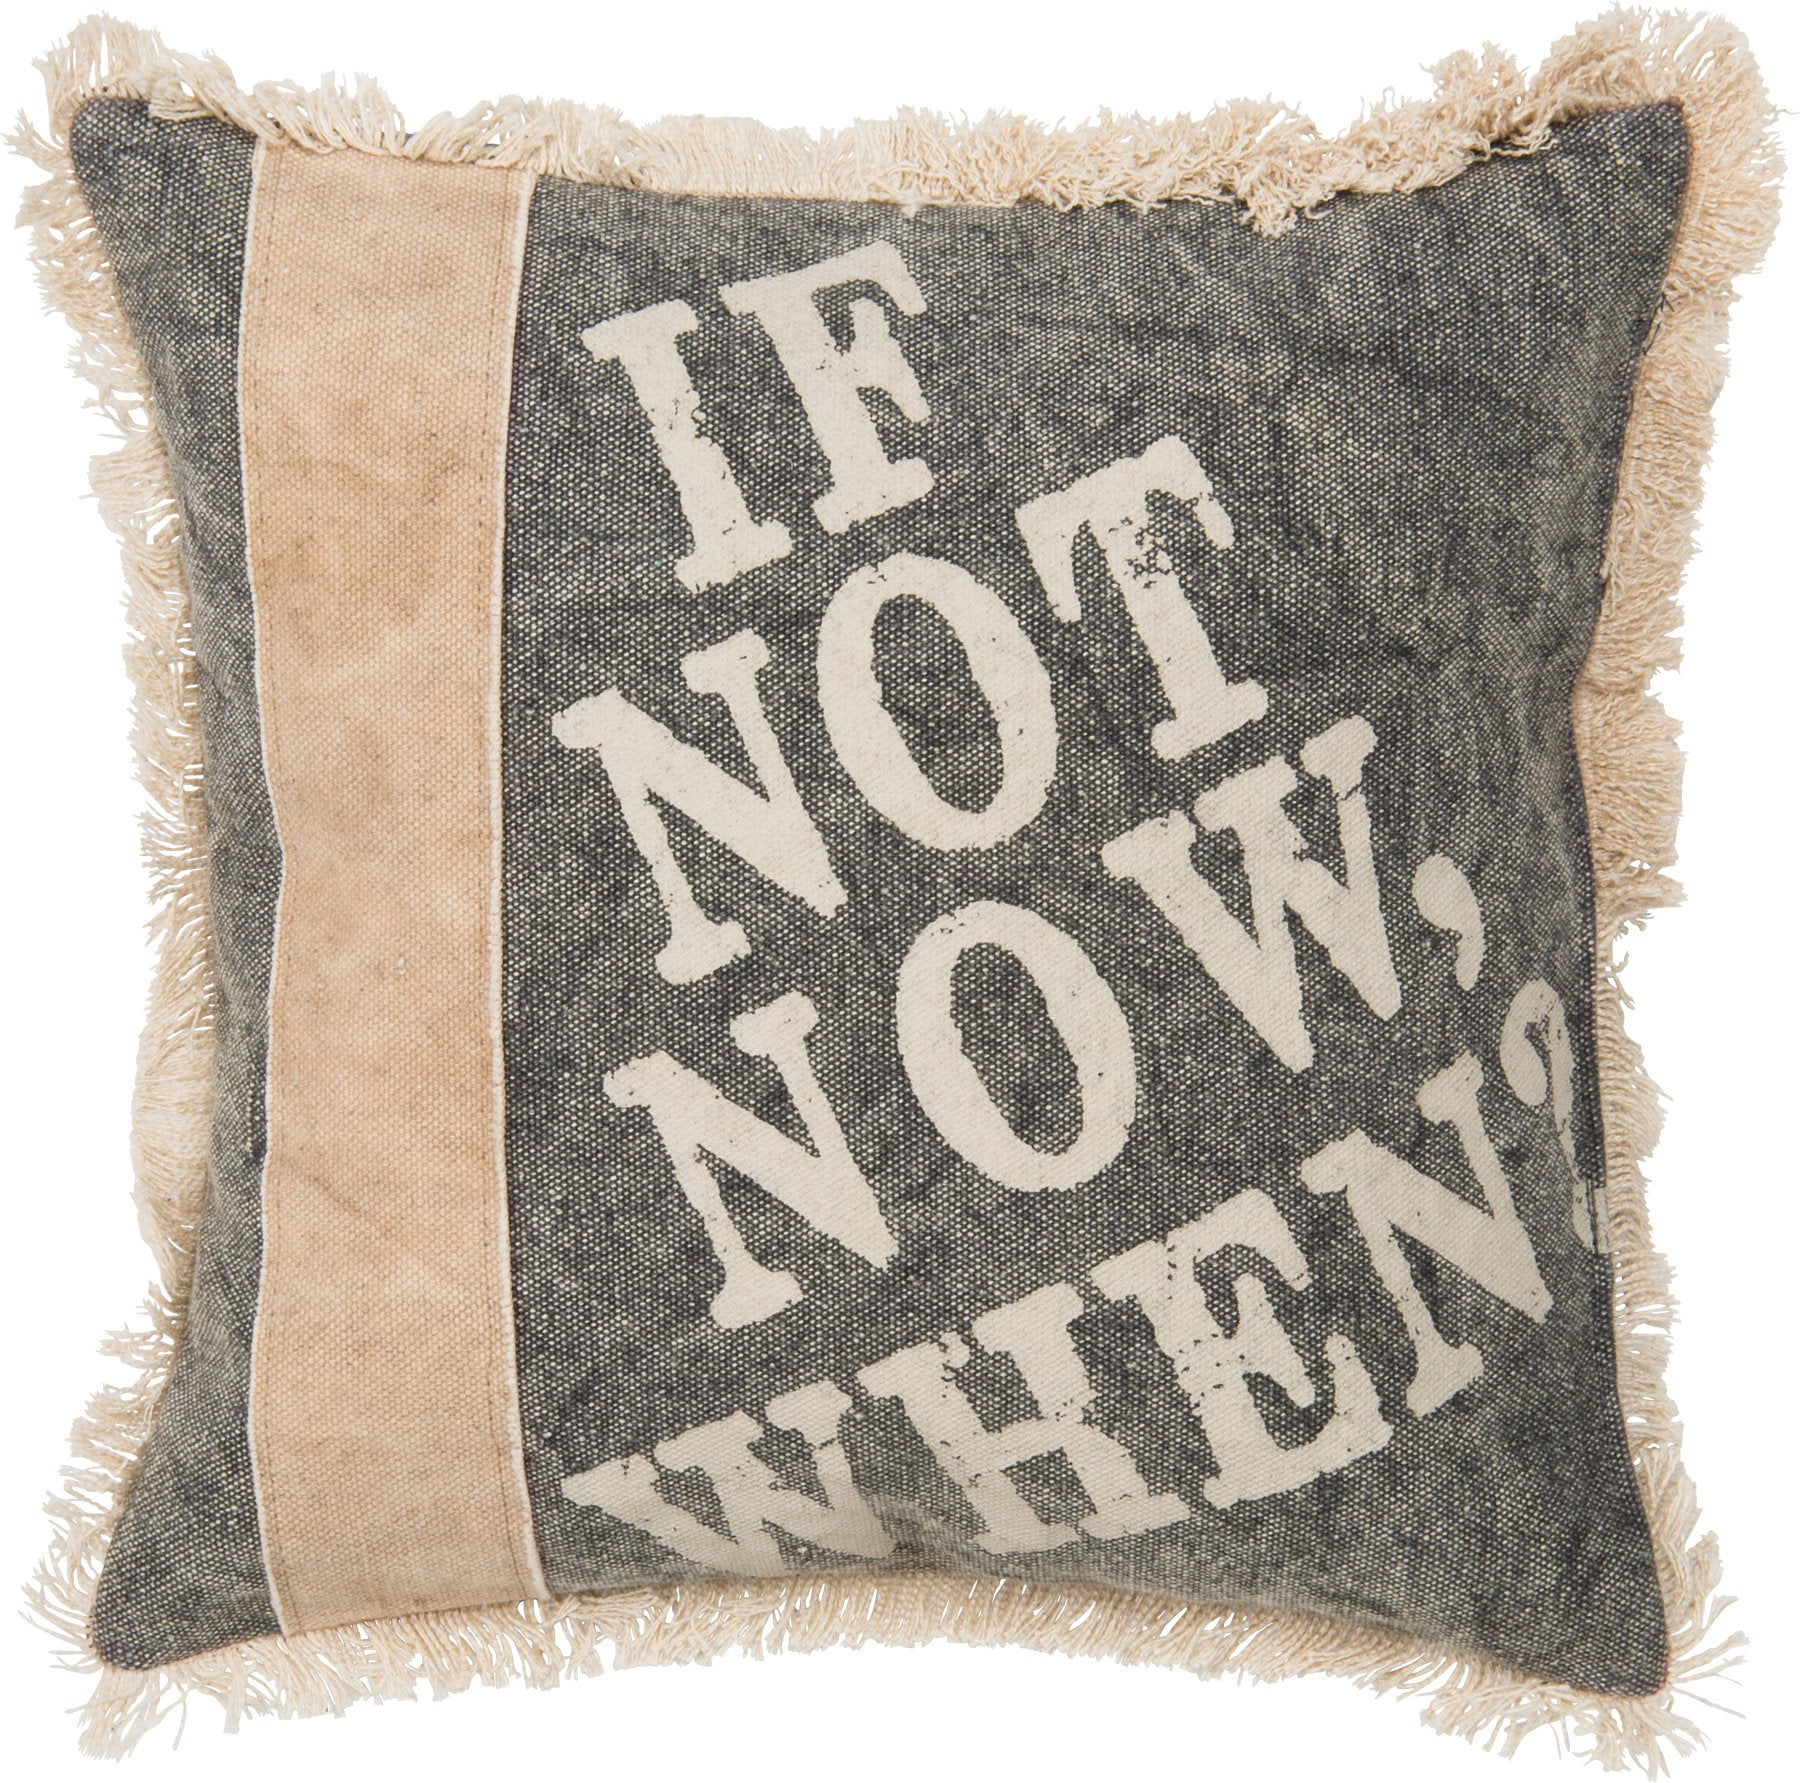 If not now When | 10x10 Pillow & Insert | Home Decor | Meditation | Throw Pillow | Graduation Gift | Primitive Decor | Gift for Her